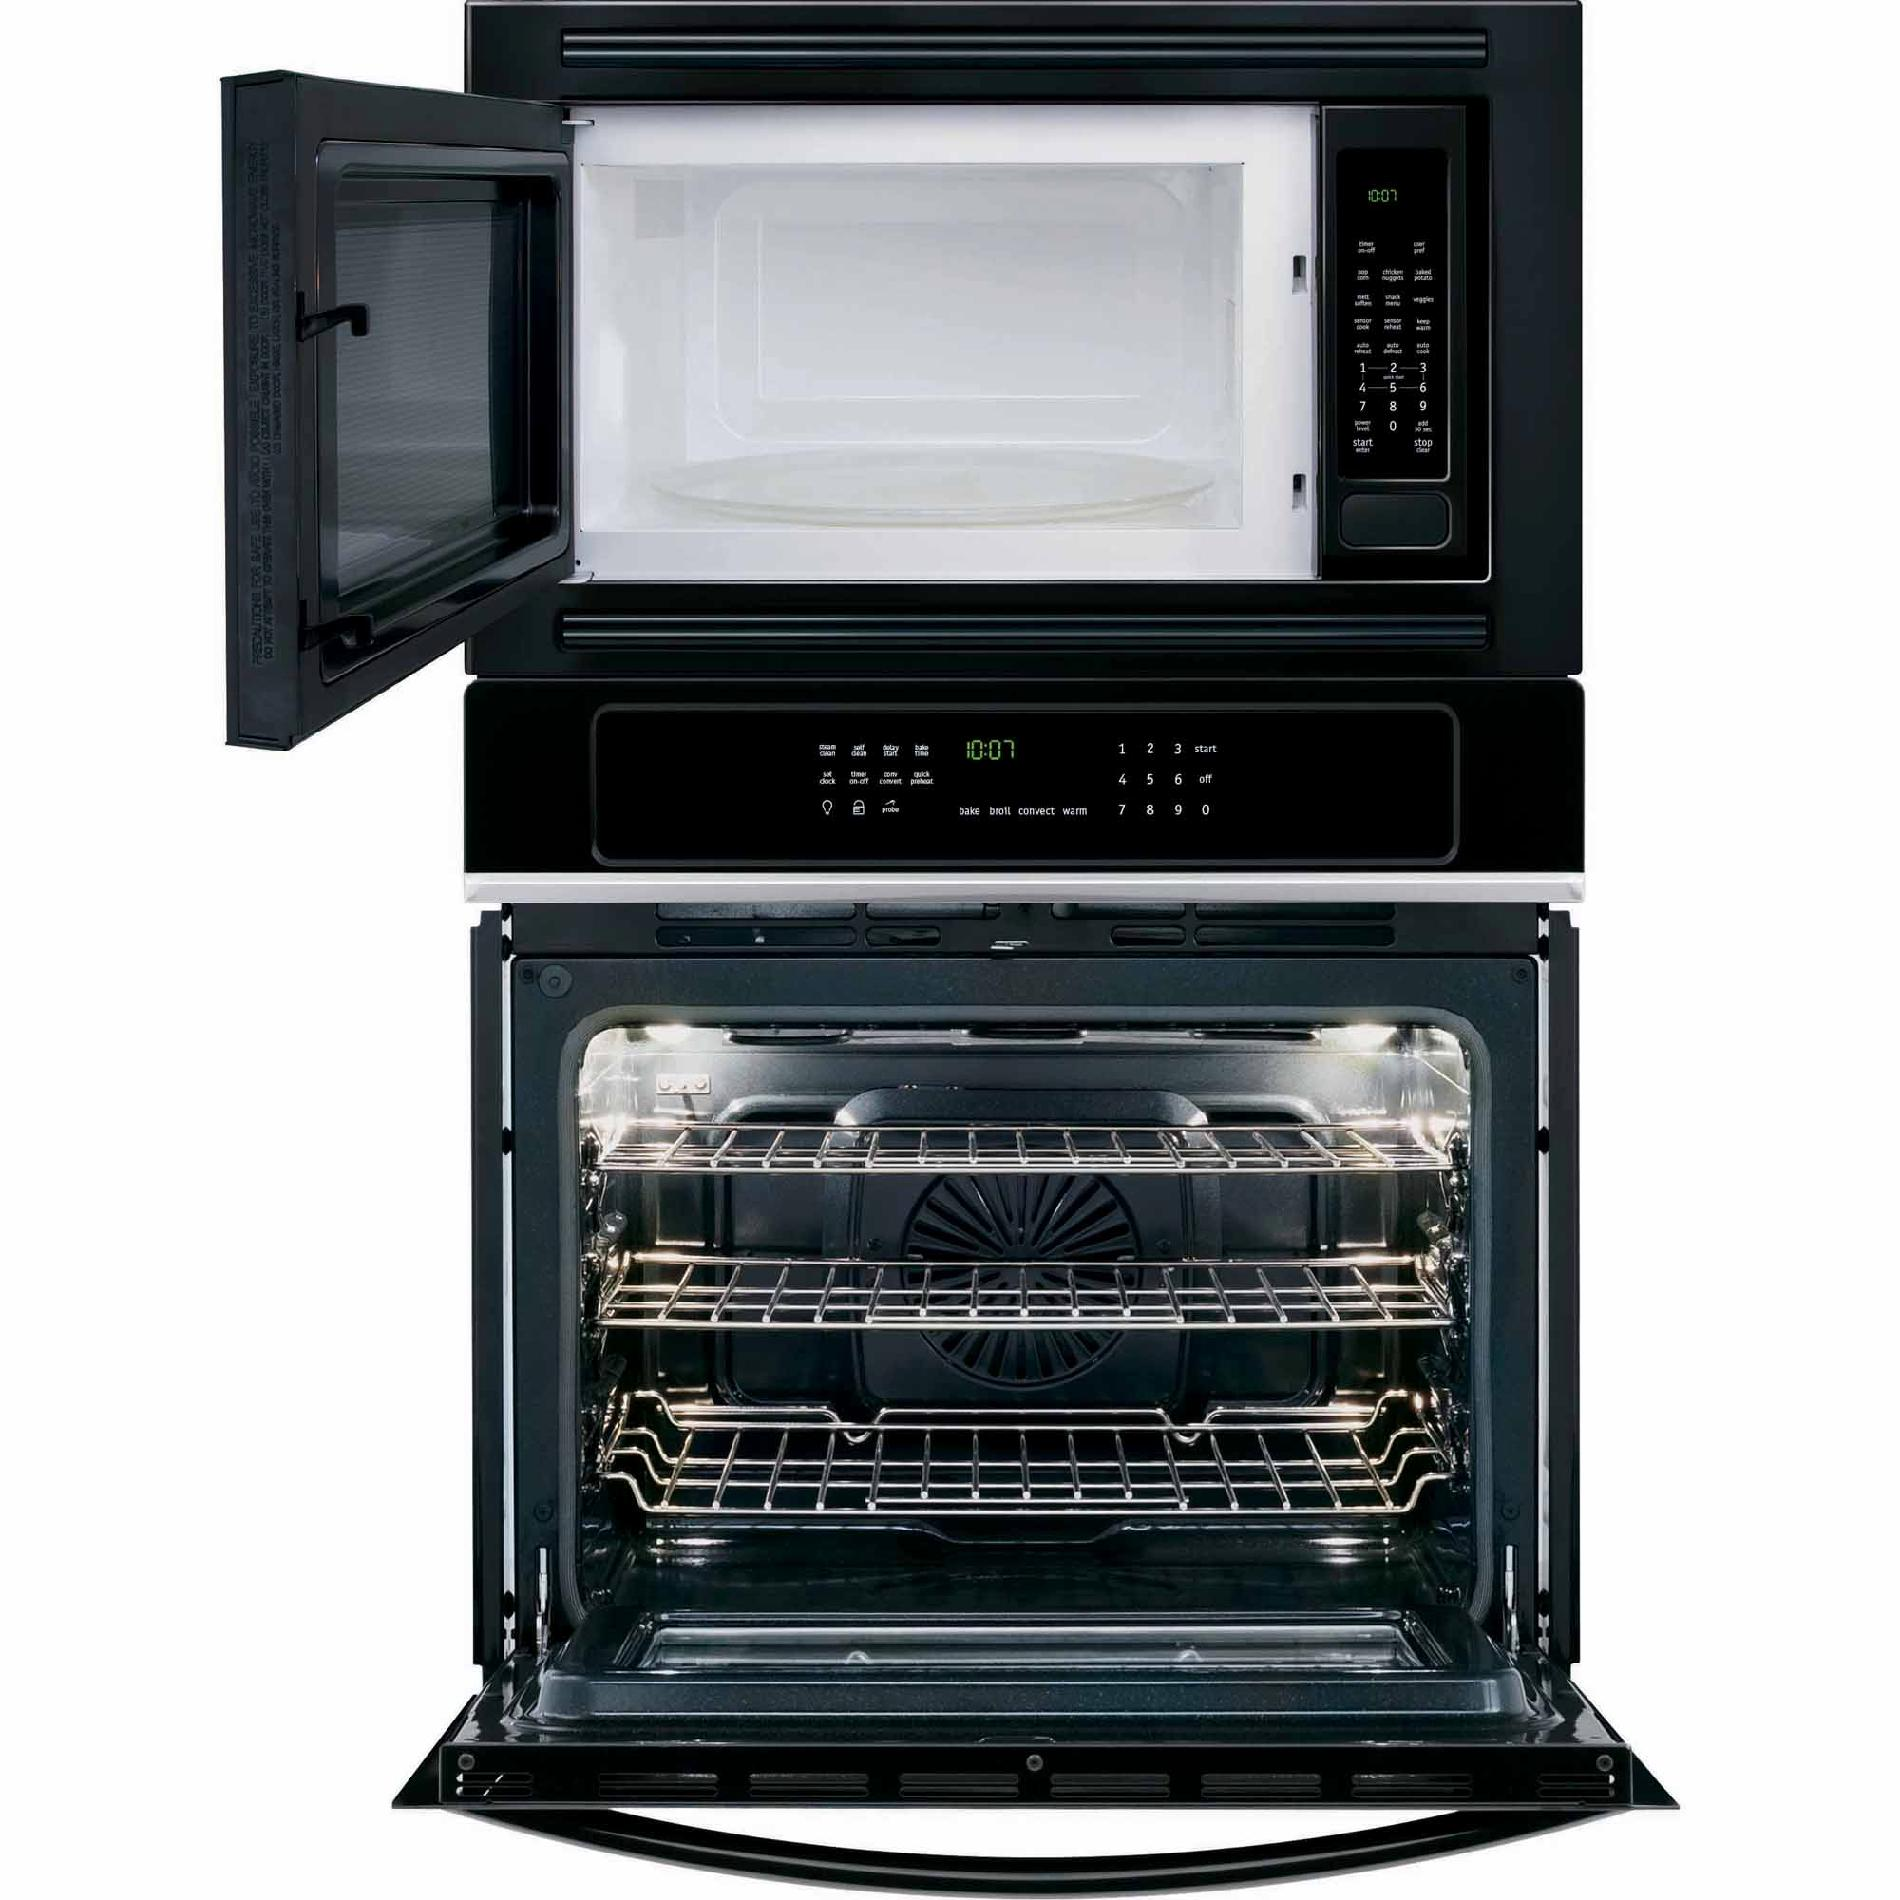 Frigidaire FGMC2765PB Gallery 3.8 cu. ft. Electric Wall Oven/Microwave Combination - Black